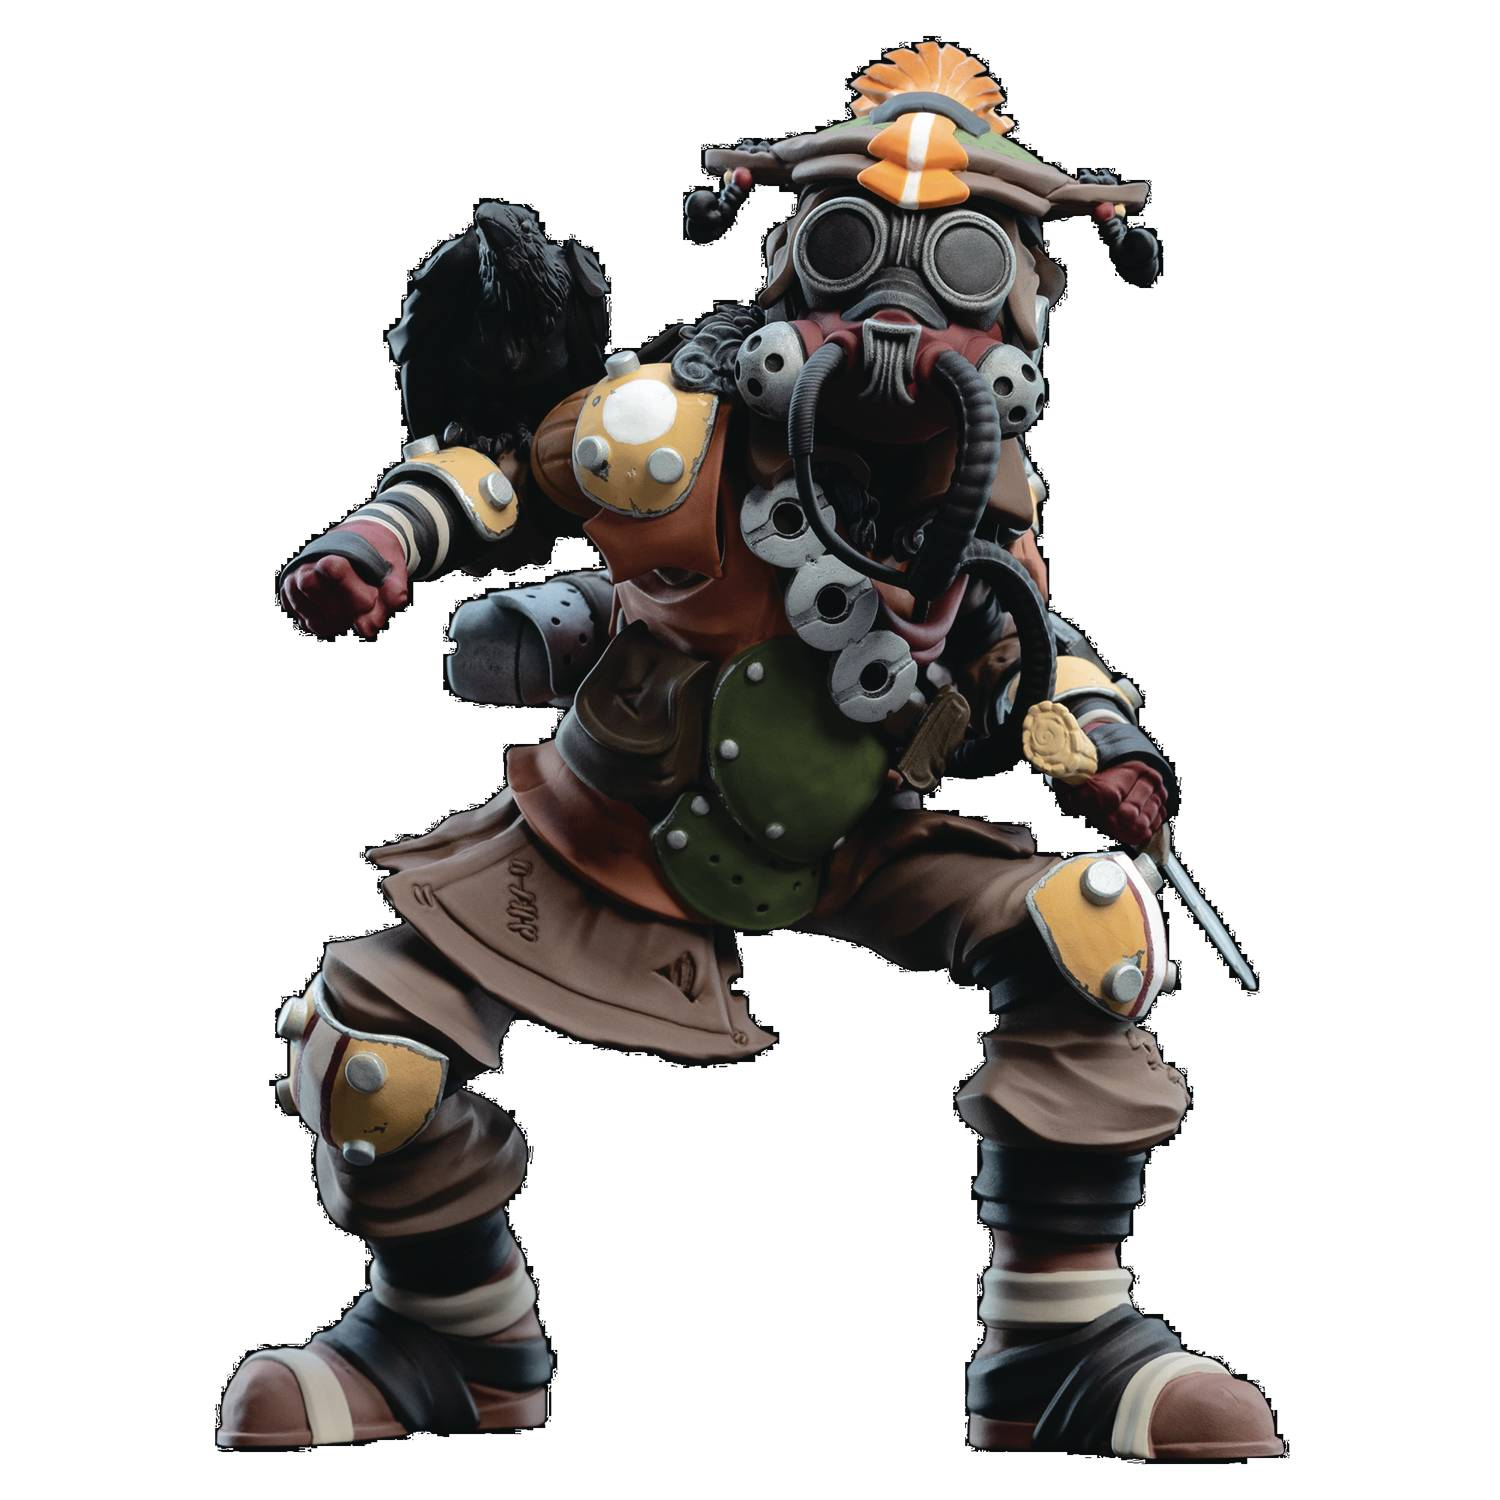 MINI EPICS APEX LEGENDS BLOODHOUND VINYL FIG